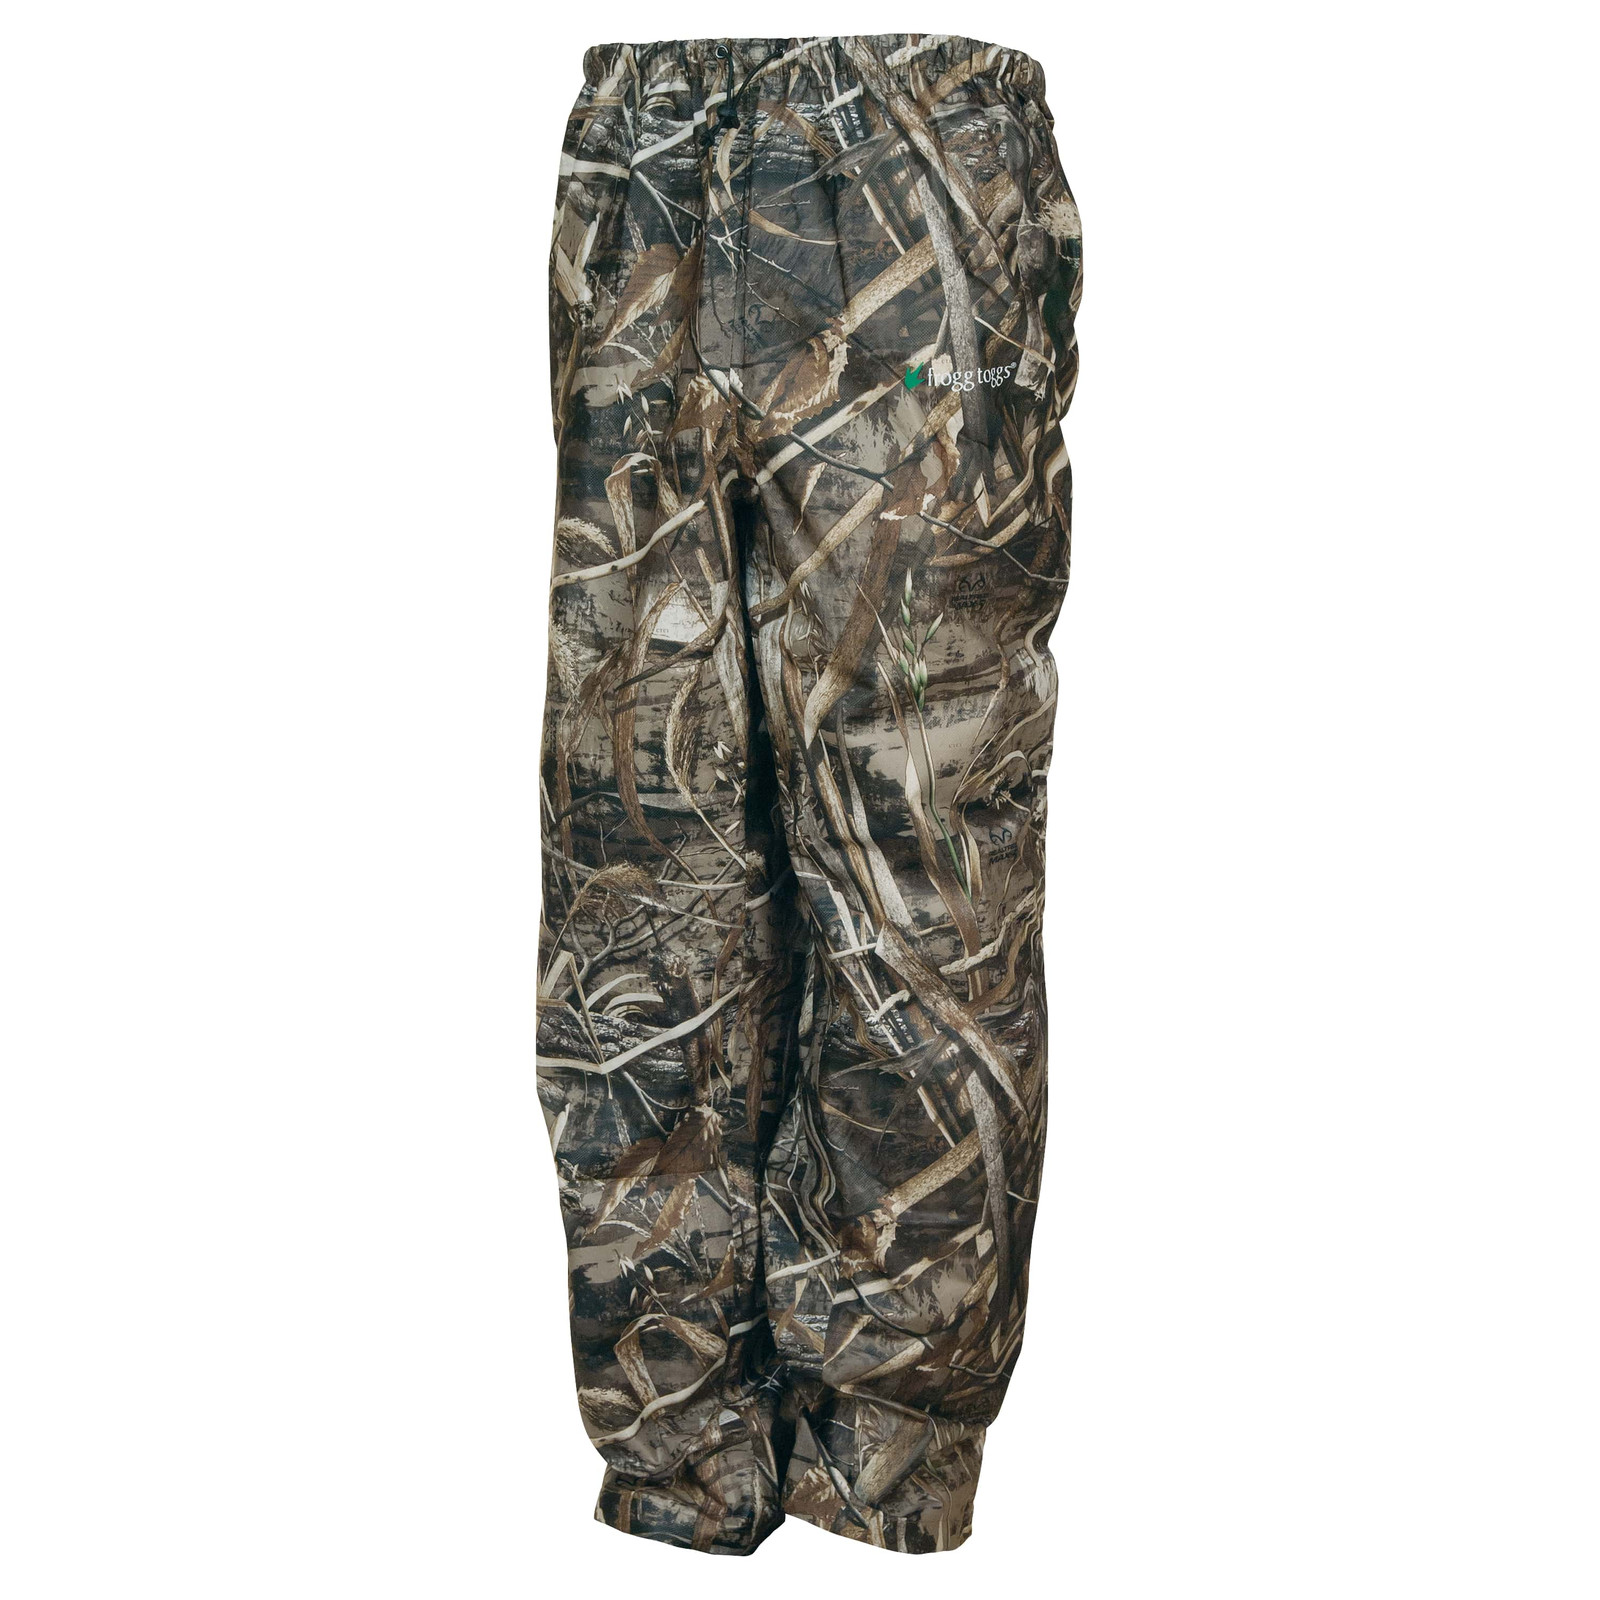 PA83102_Realtree-Max5_thumbnail-large